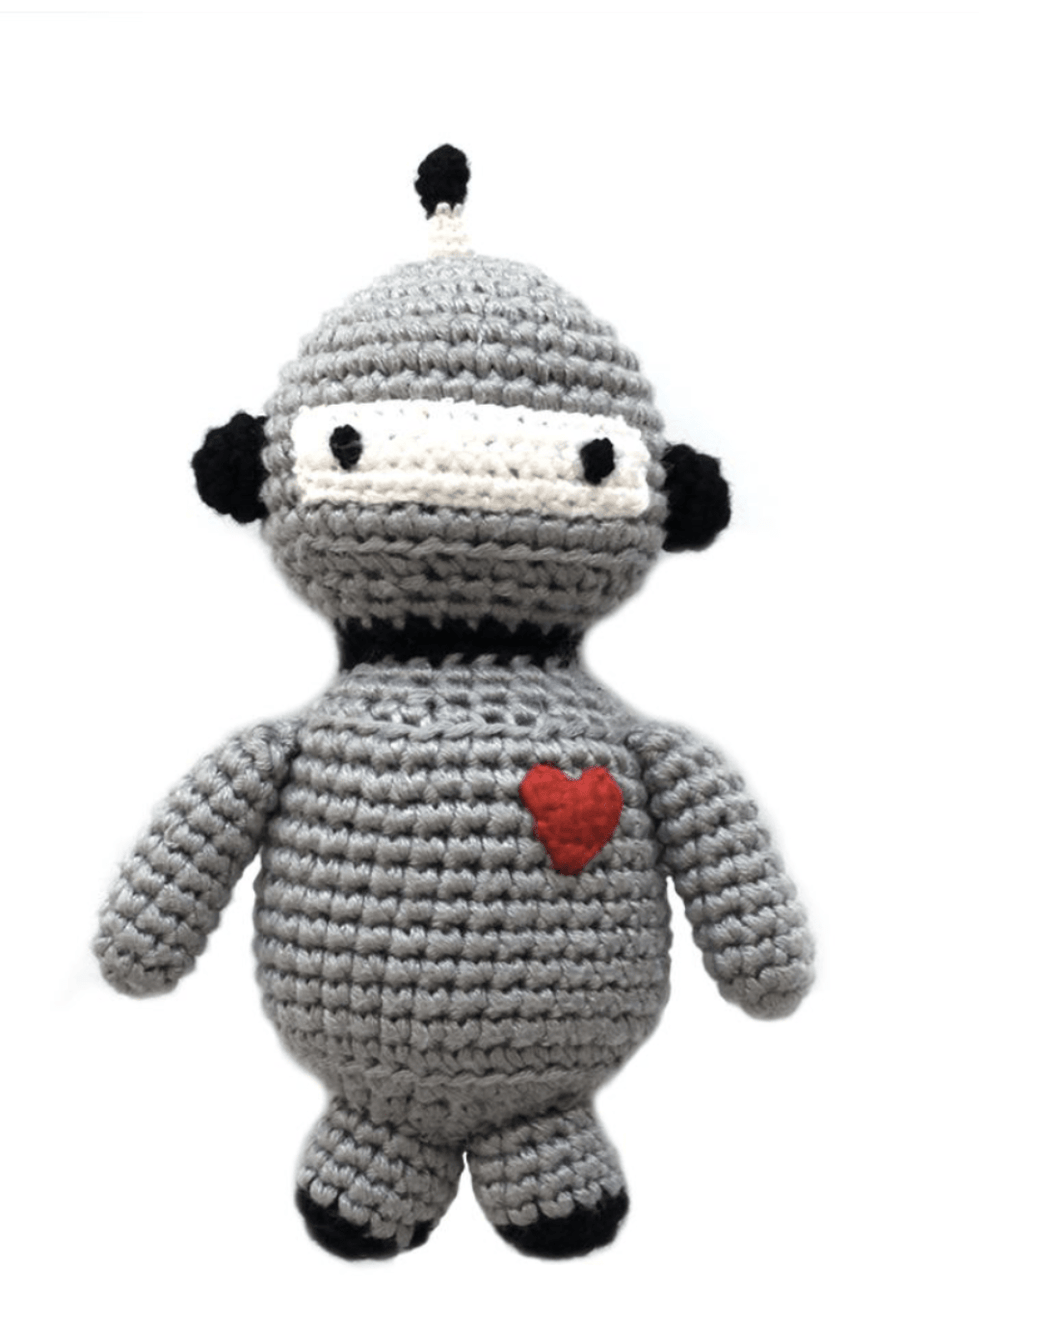 Crocheted Organic Robot Rattle - Make Me Yours Toy Studio